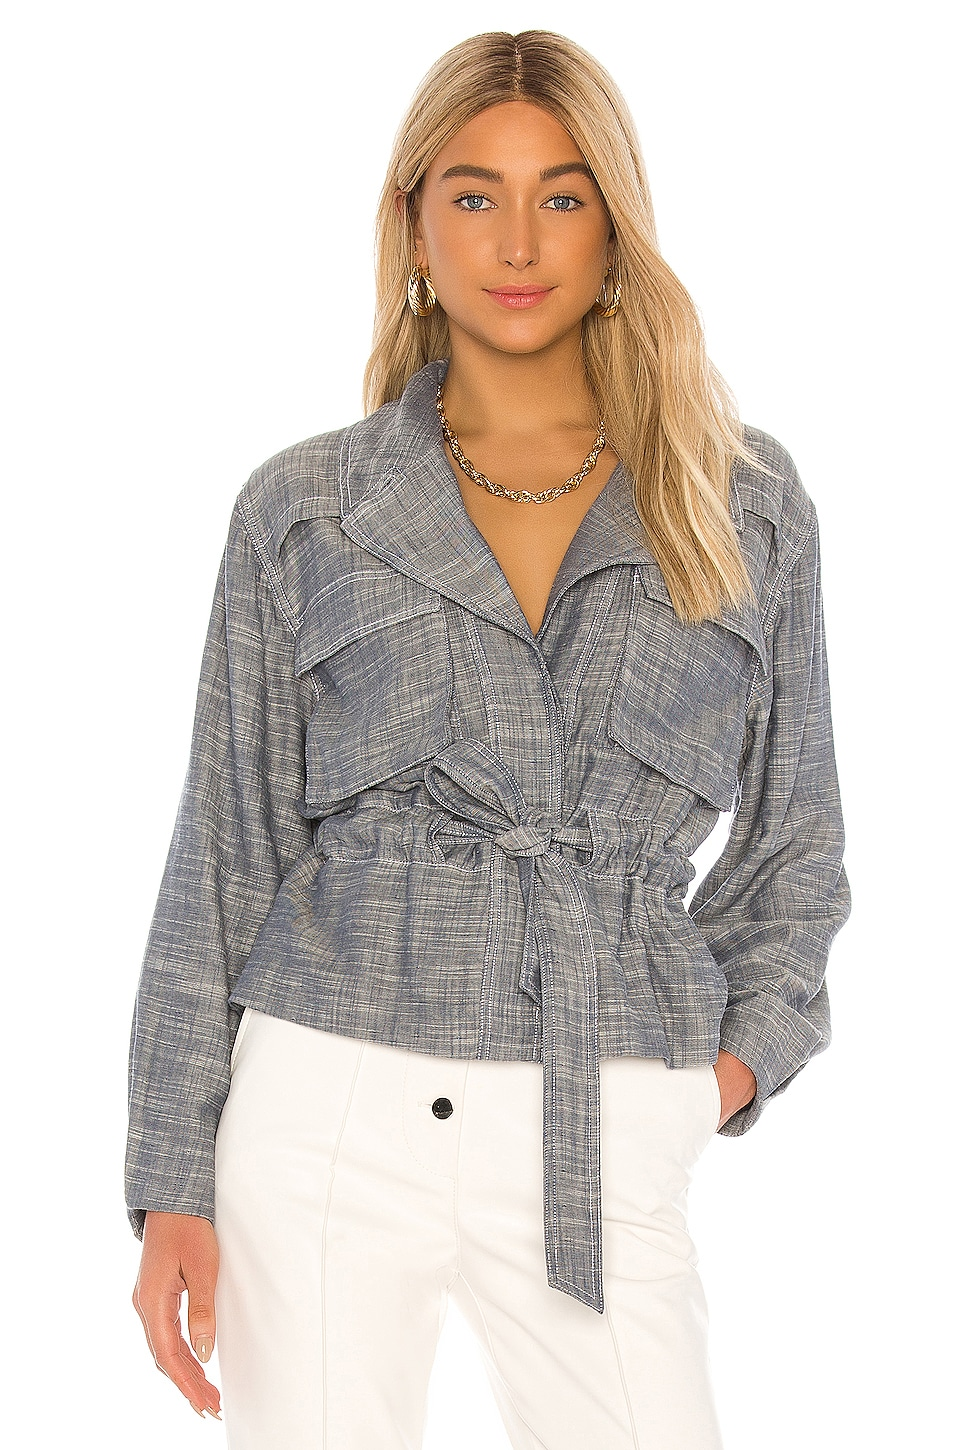 L'Academie The Ella Jacket in Dusty Blue